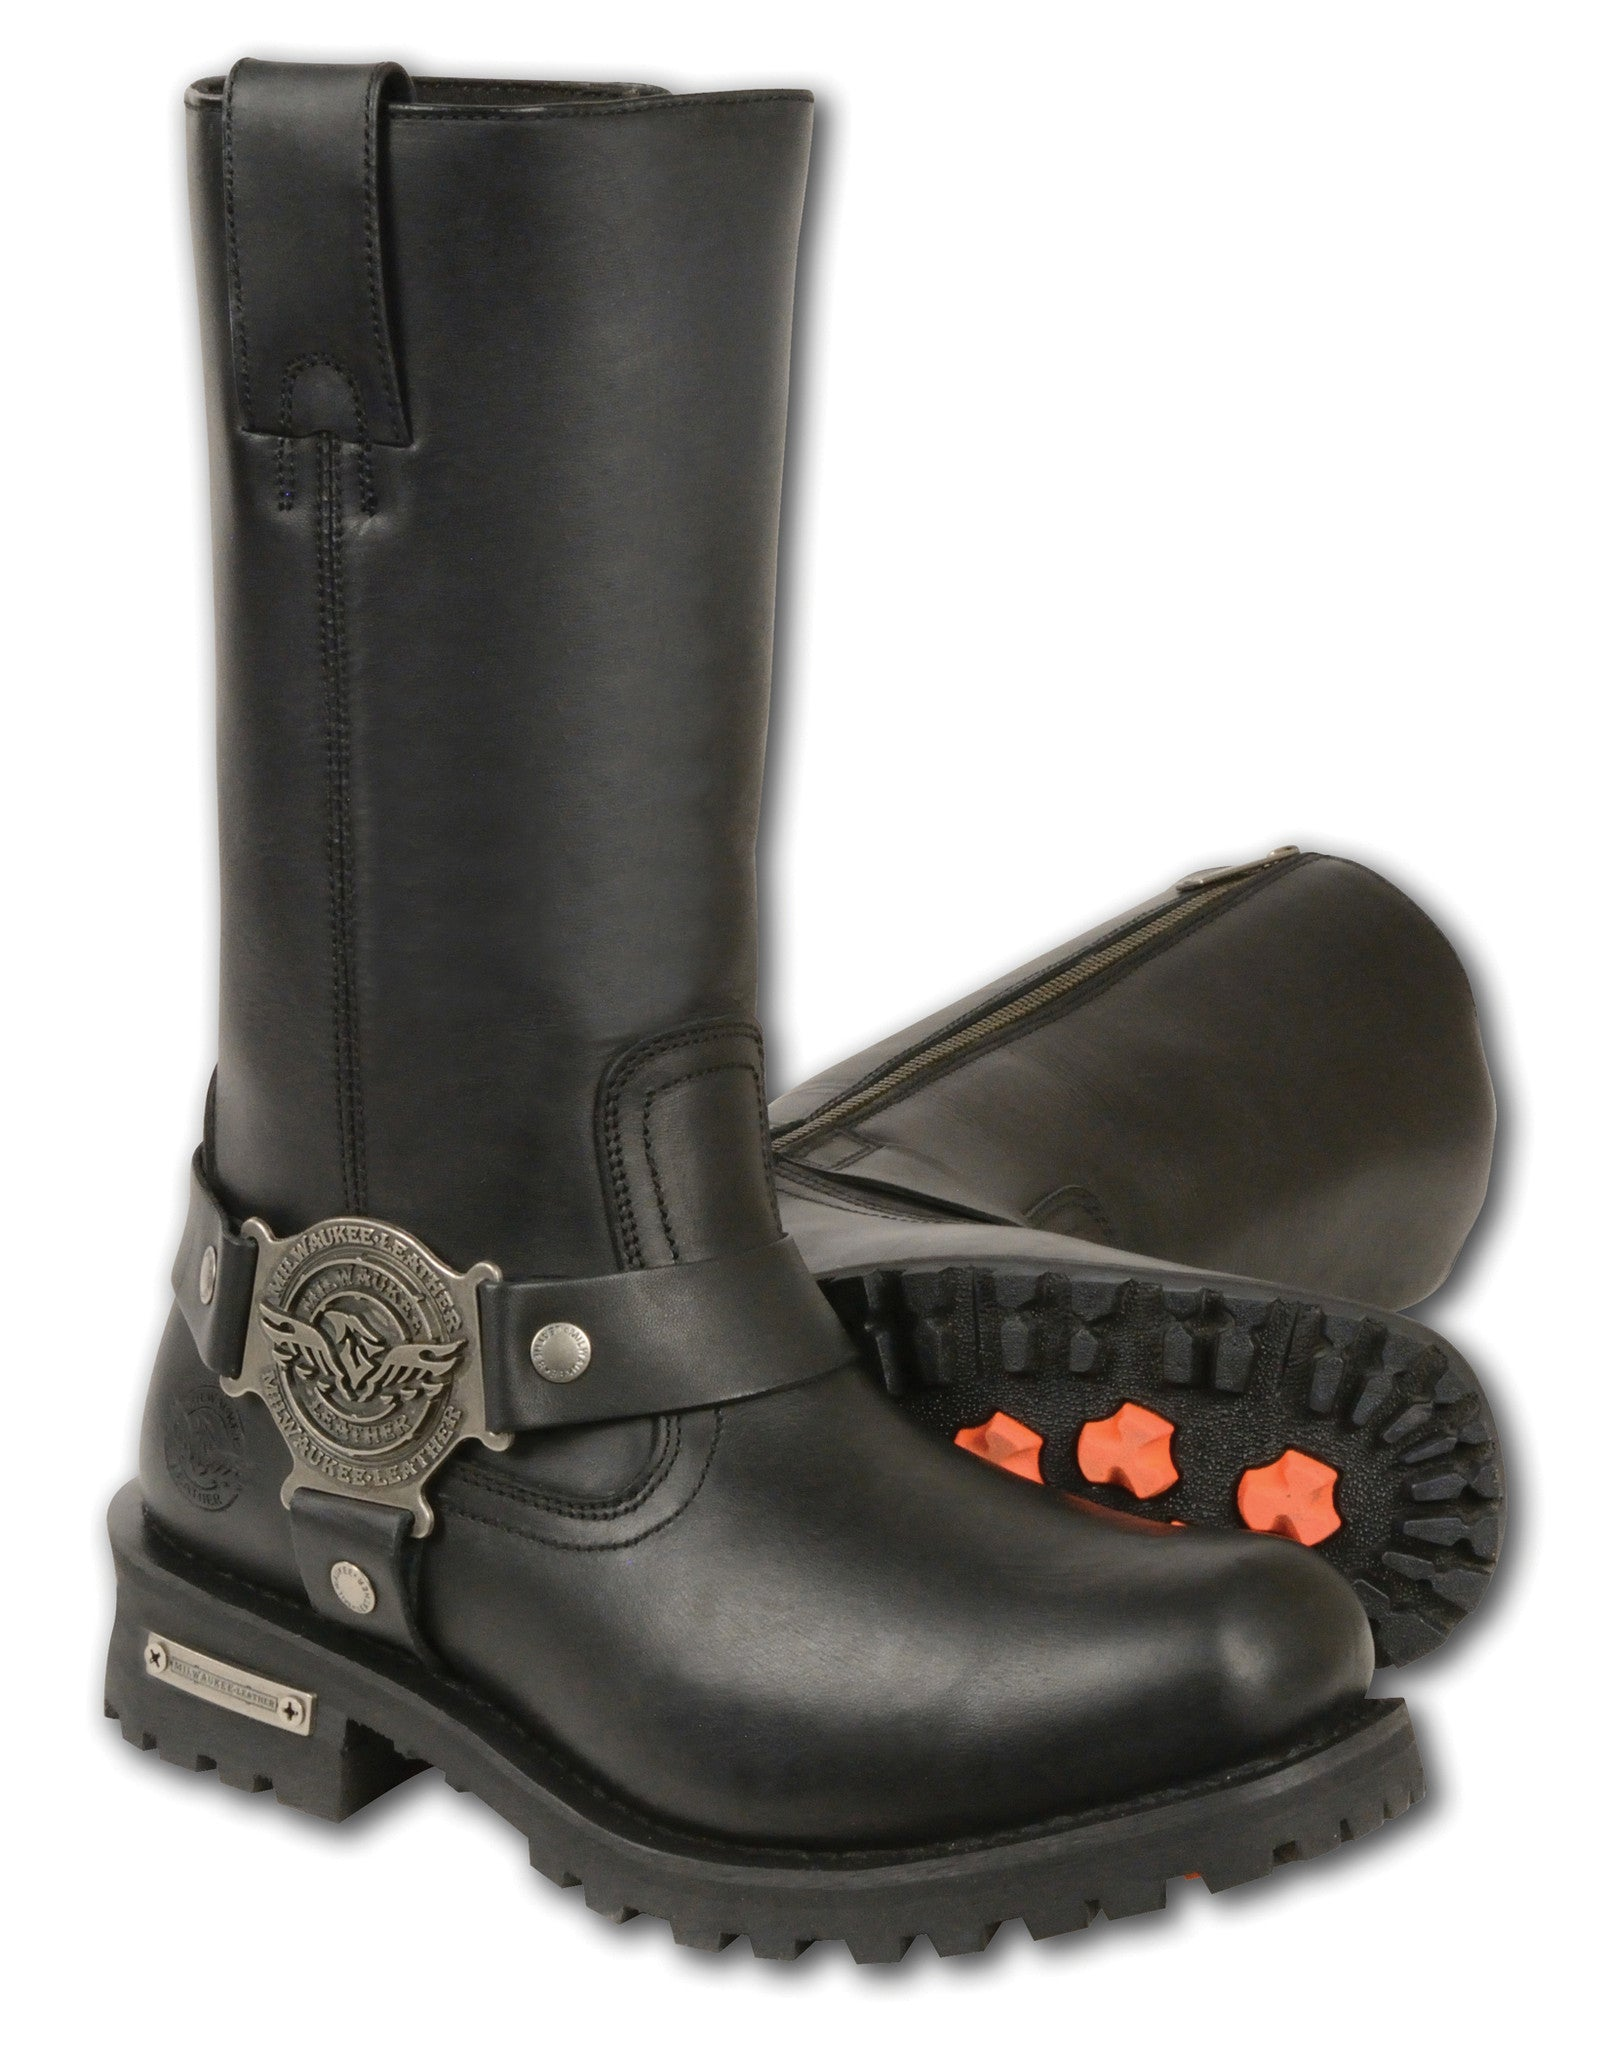 LADIES RIDING 11 INCH CLASSIC HARNESS SQUARE TOE LEATHER BOOT